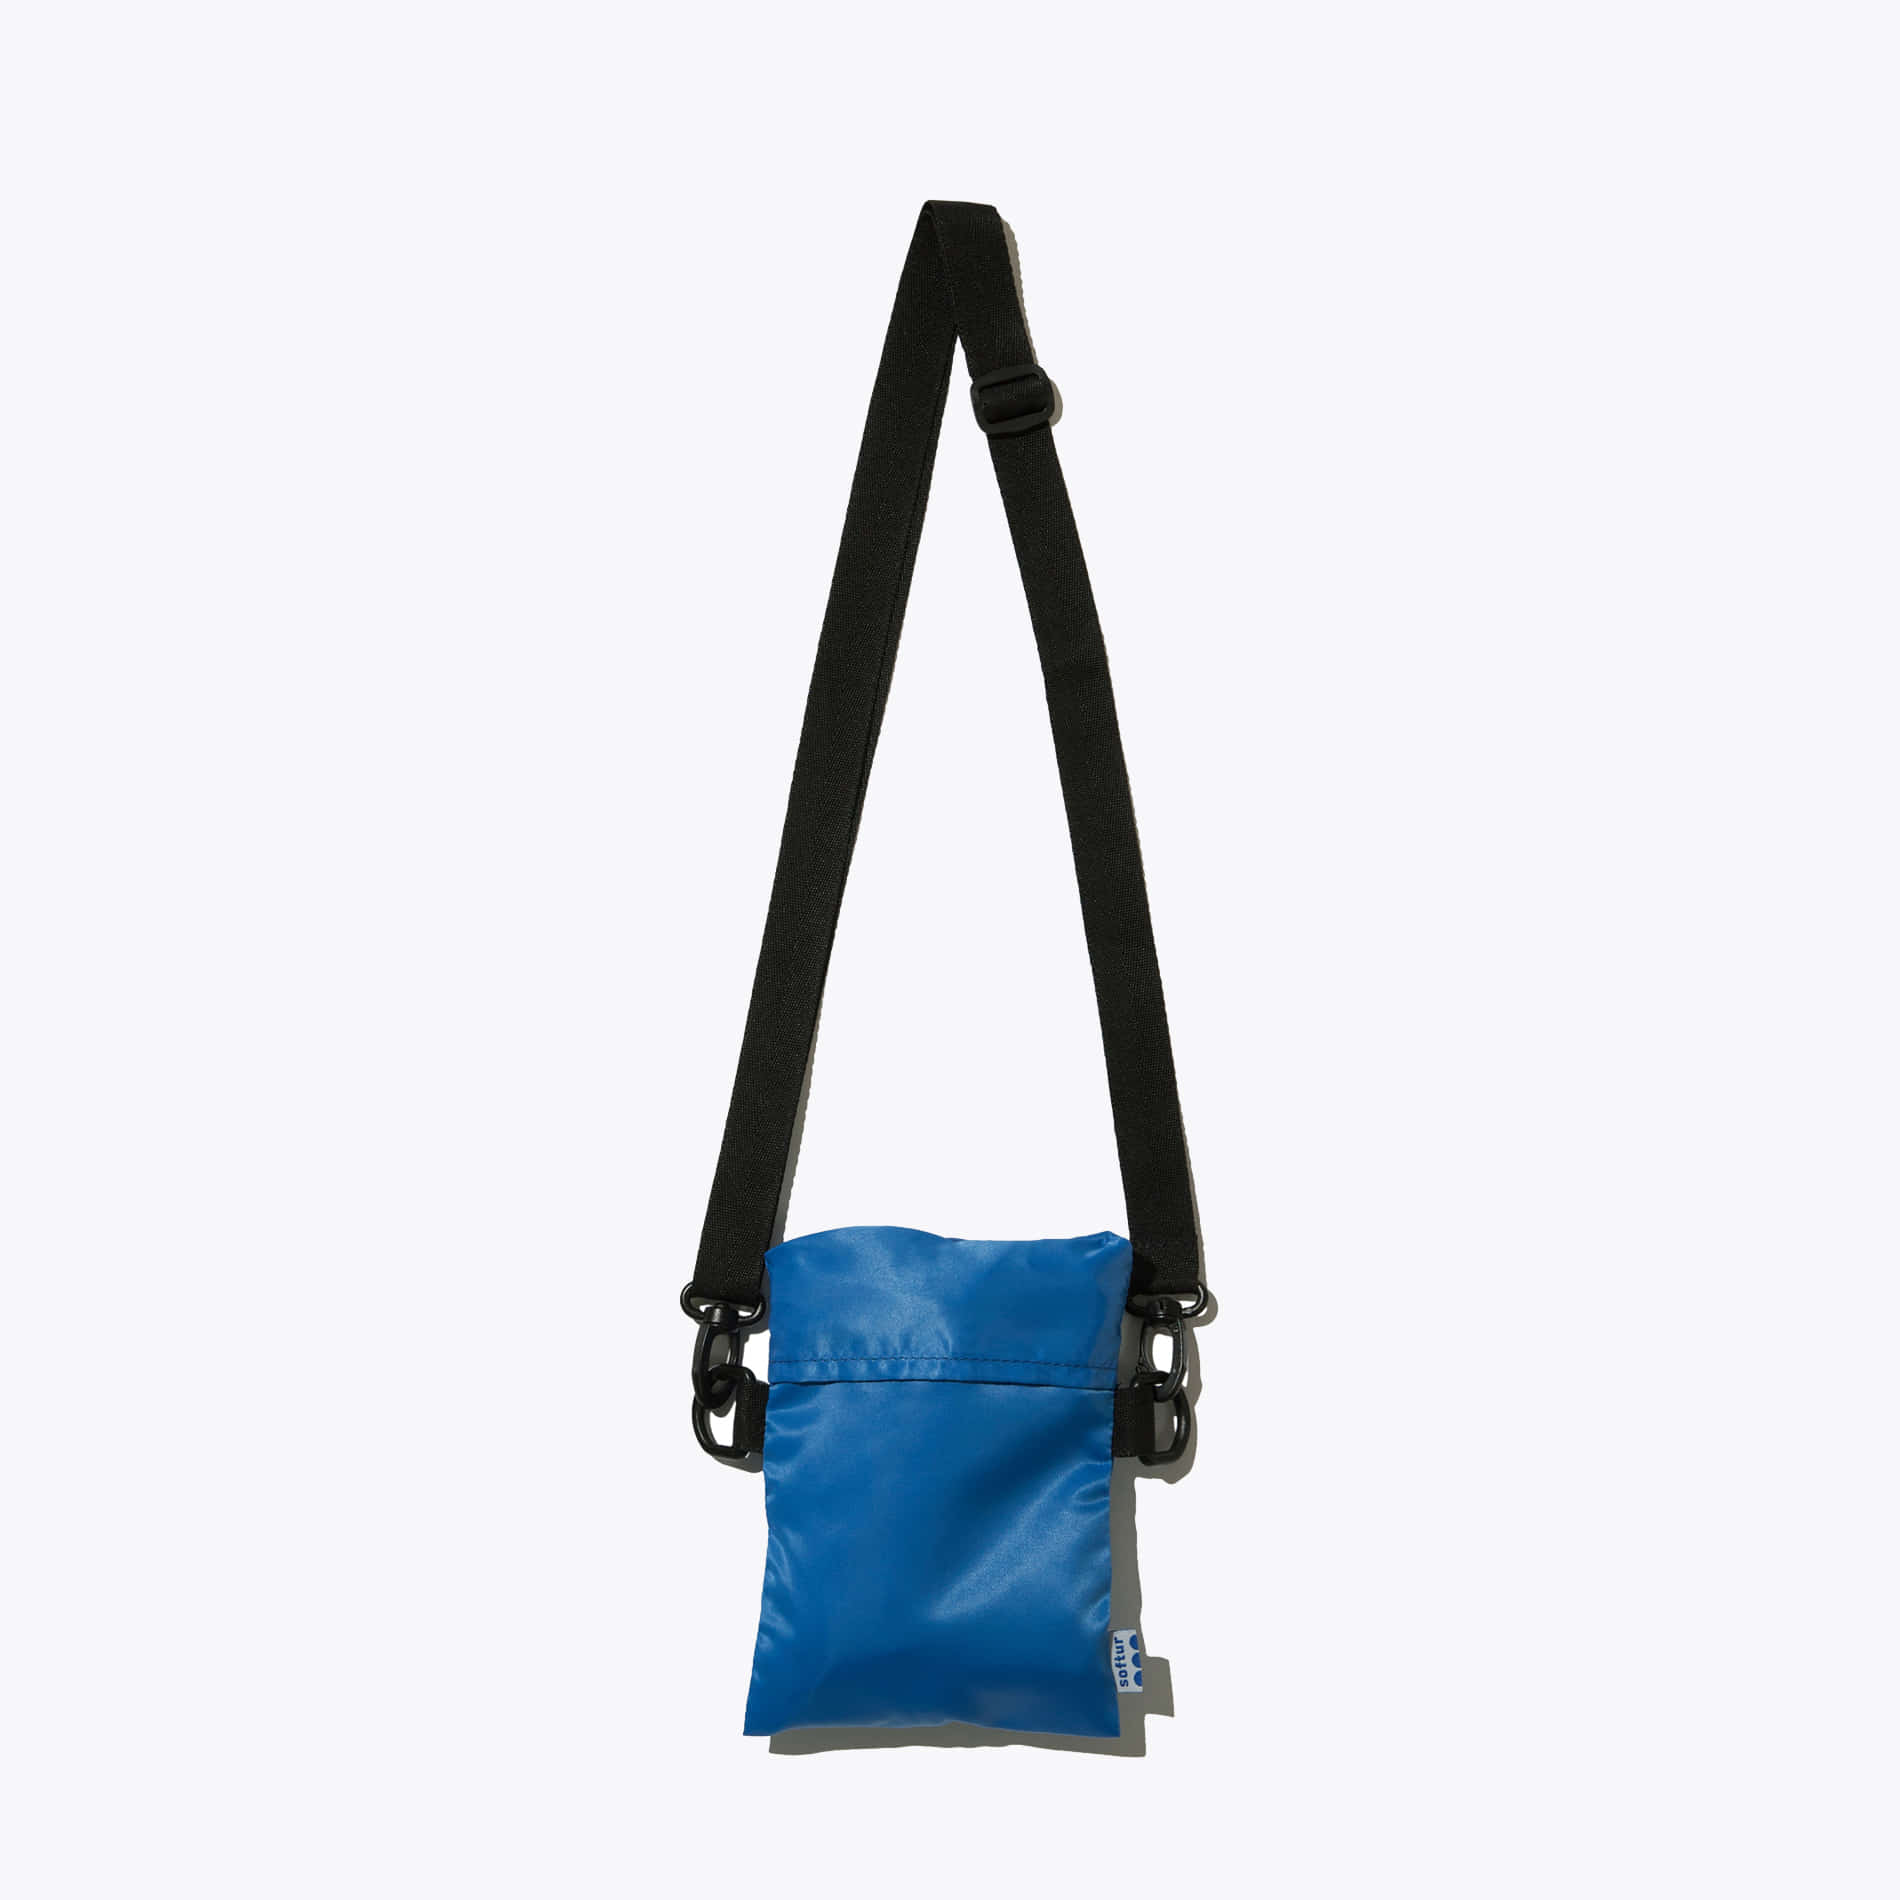 LAUNDRY TOTE BAG BLUE